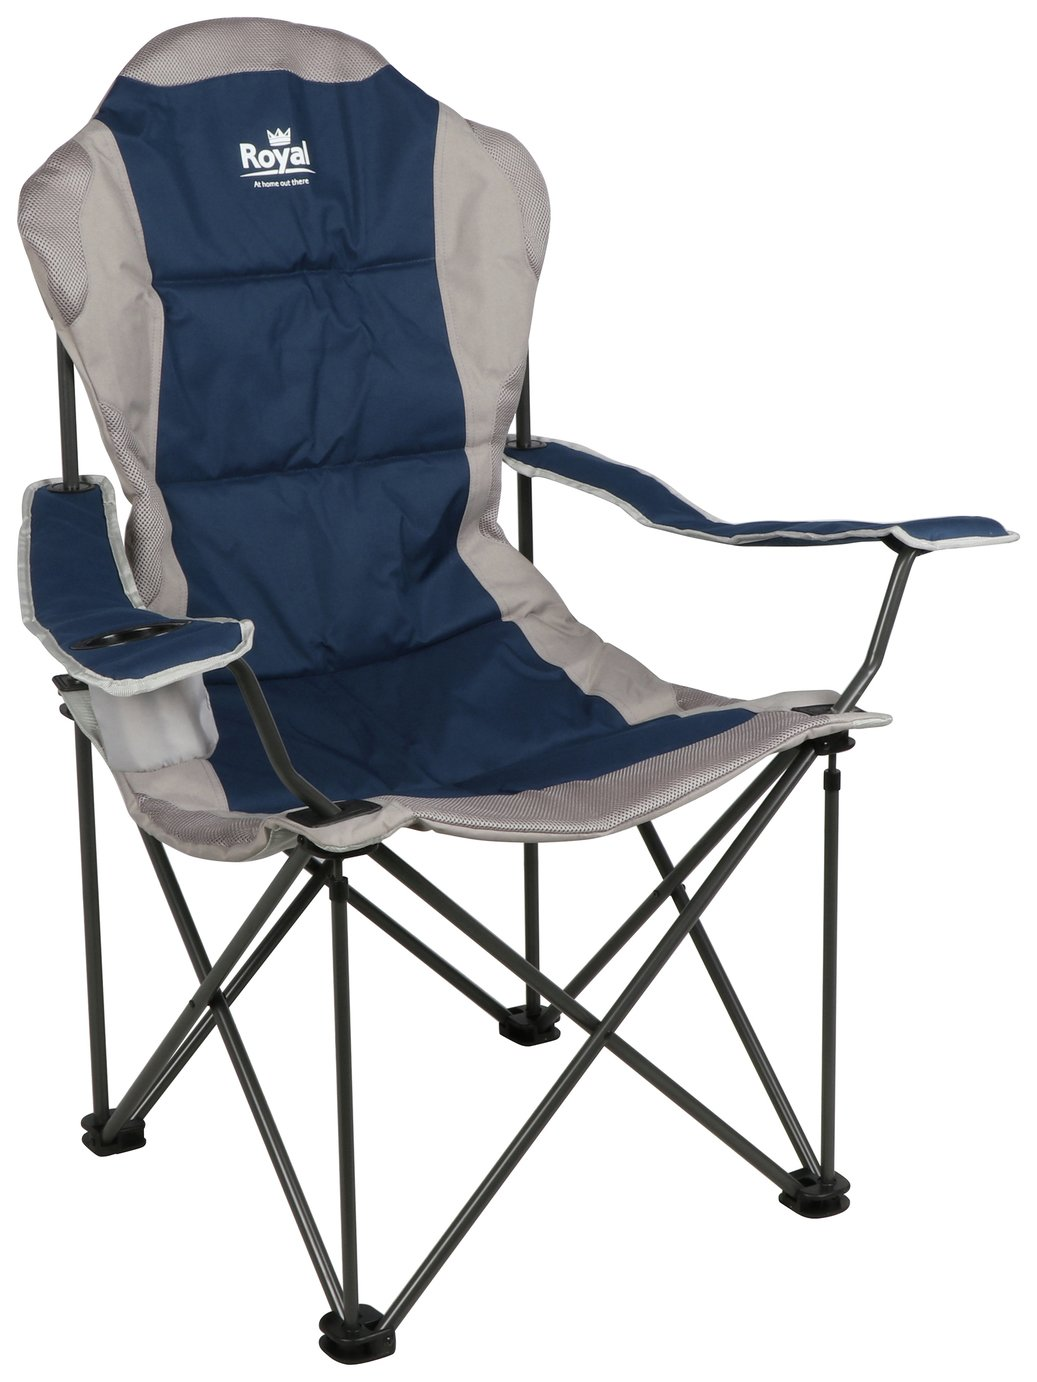 Royal President Camping Chair - Blue/Silver